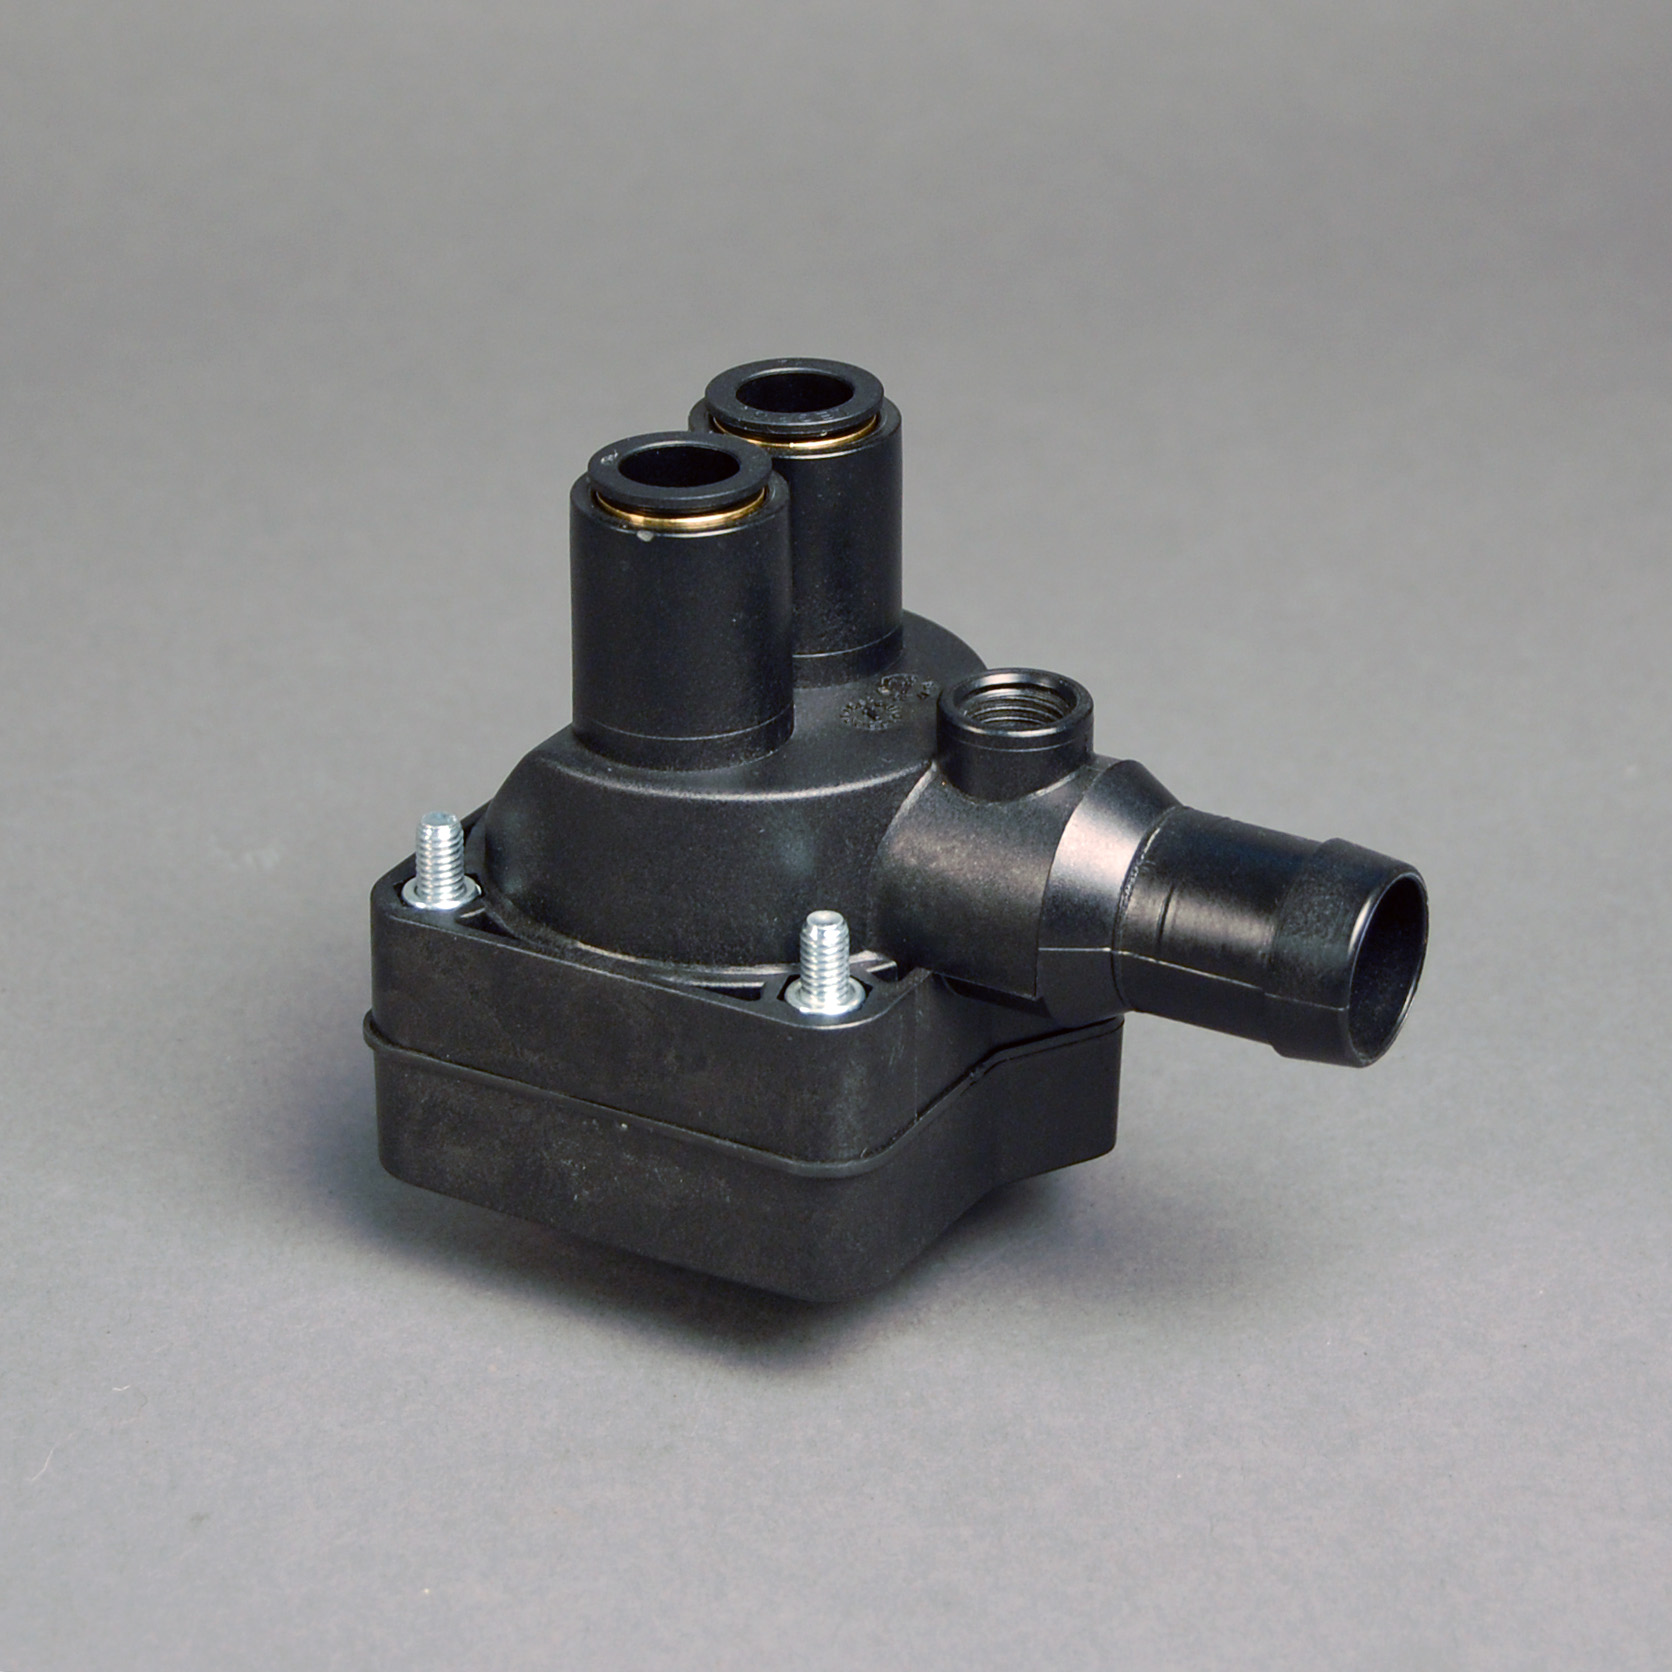 SVI BW-7001-05 Dump Valve | Replaces 2201129, 243020, 2201129